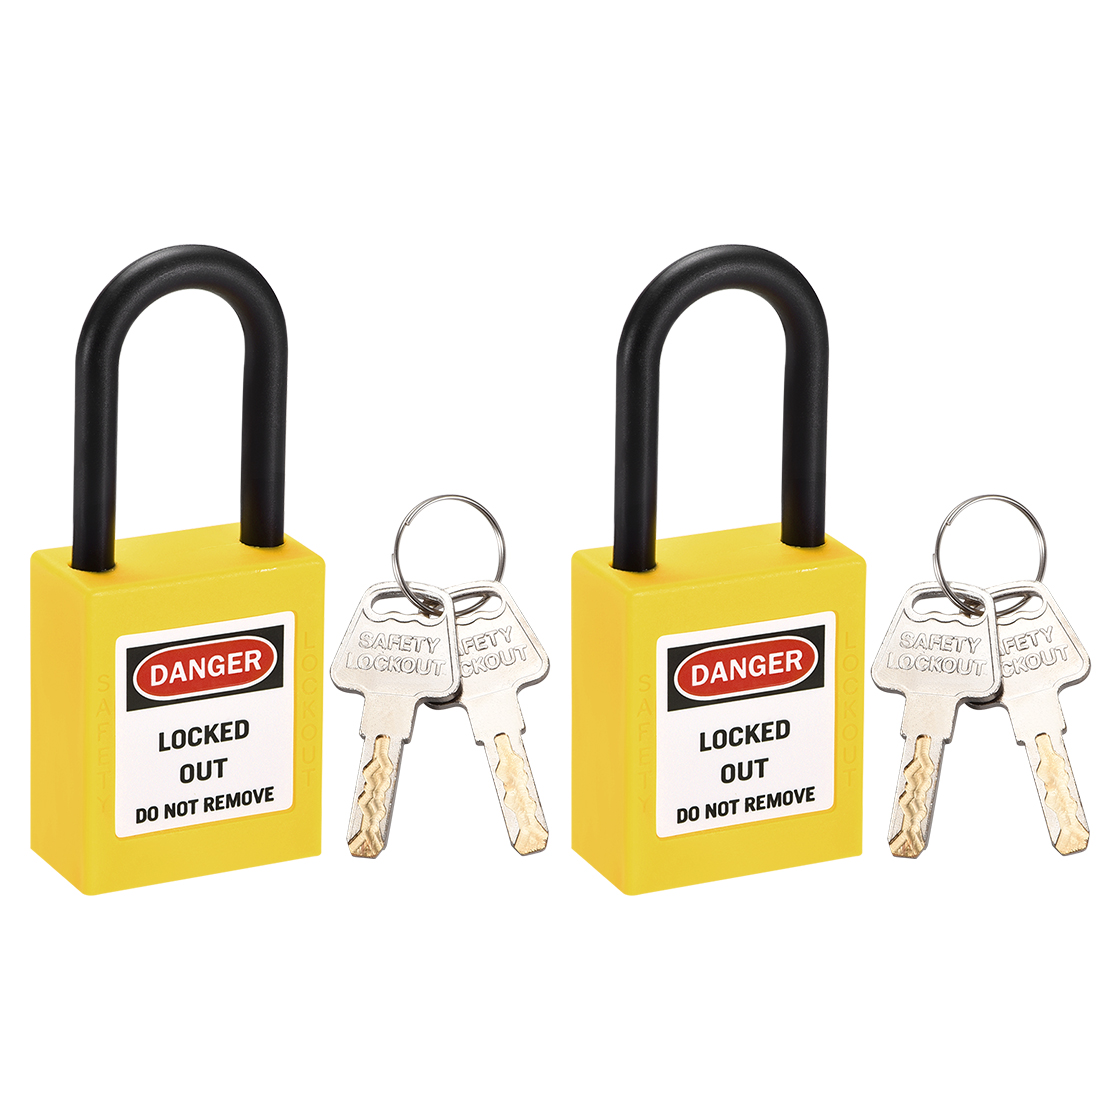 Lockout Tagout Locks,1-1/2 Inch Shackle Key Different Safety Padlock Yellow 2pcs